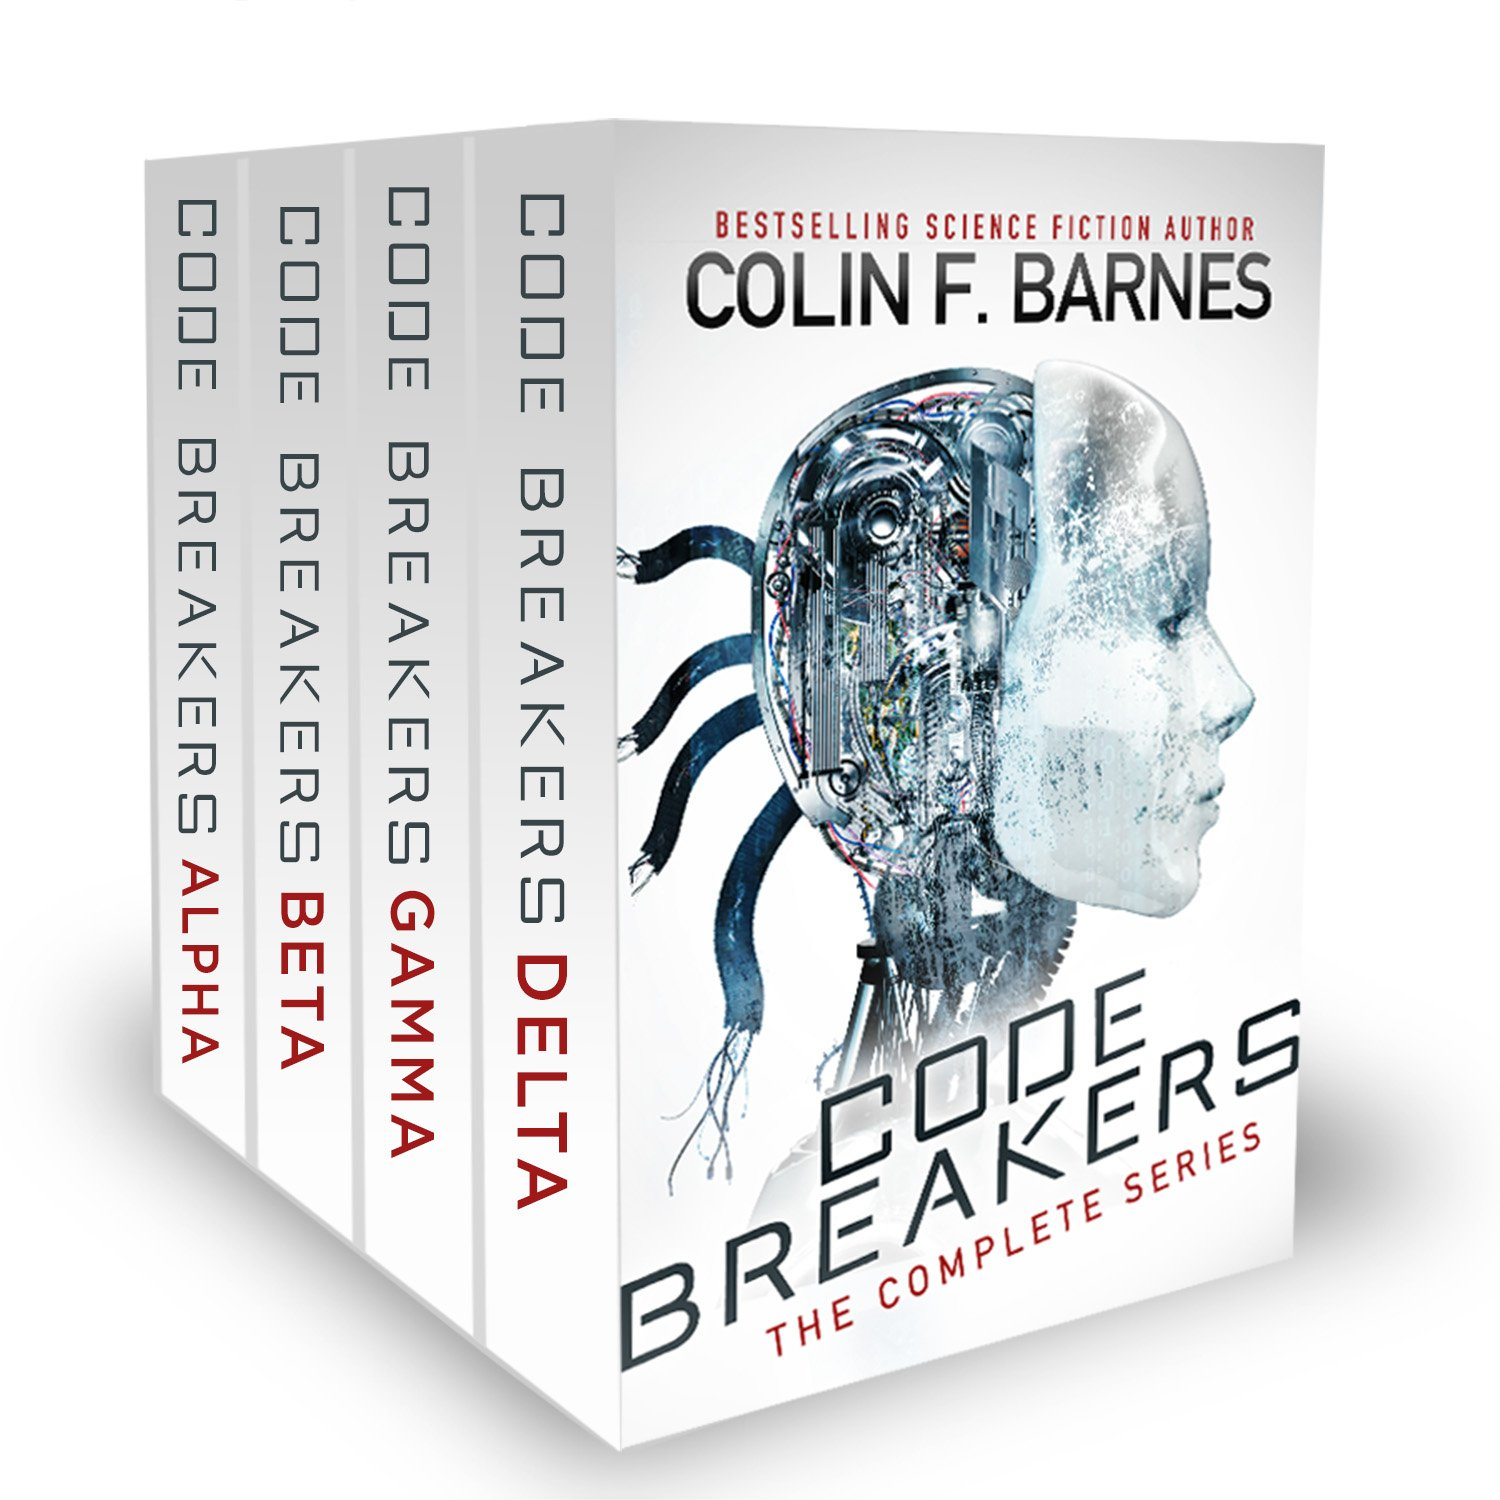 Amazon code breakers complete series books 1 4 ebook colin f amazon code breakers complete series books 1 4 ebook colin f barnes kindle store fandeluxe Images